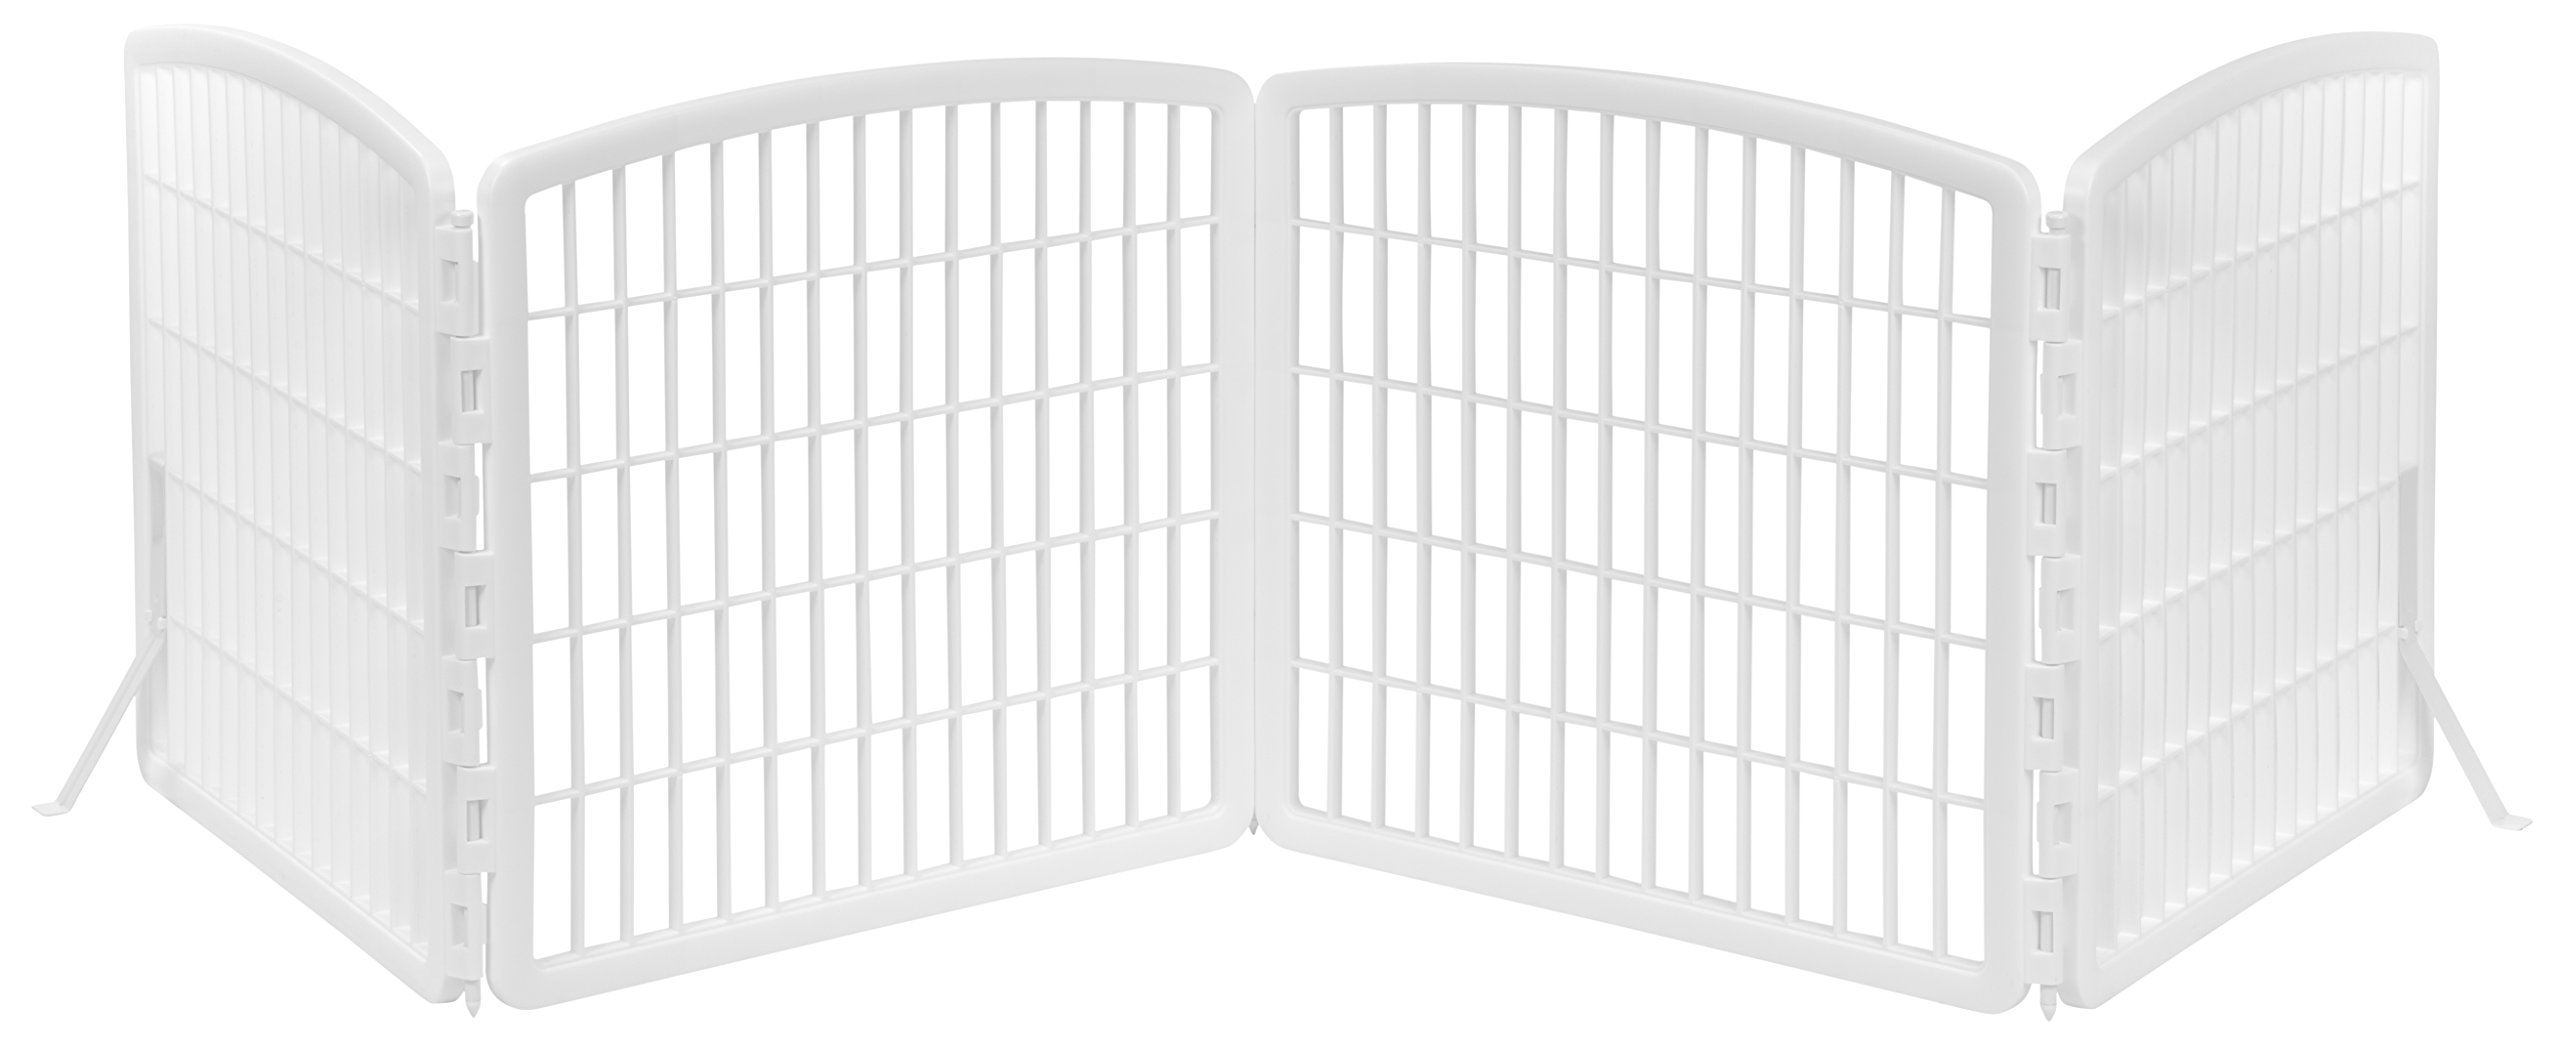 IRIS Indoor Plastic Pet Fence, White